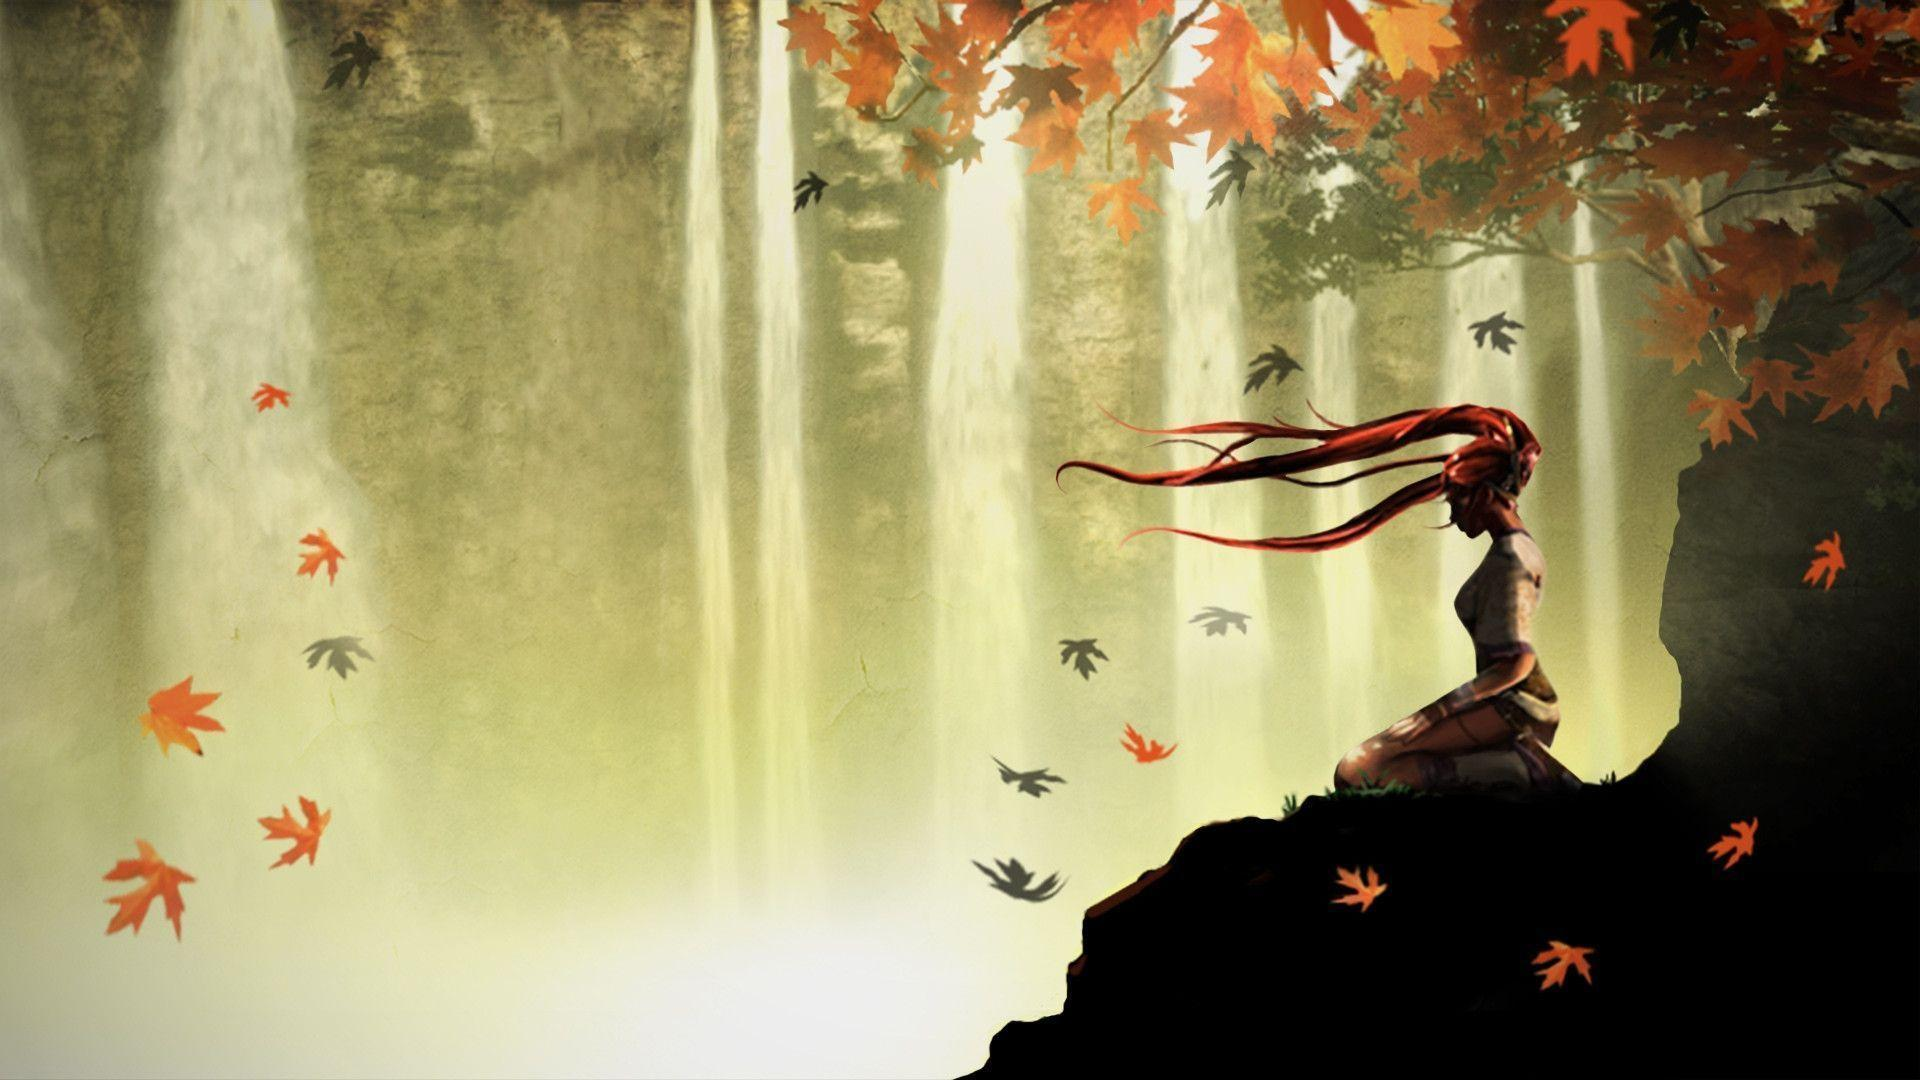 Falling Leaves Live Wallpaper For Android Heavenly Sword Wallpapers Hd Wallpaper Cave